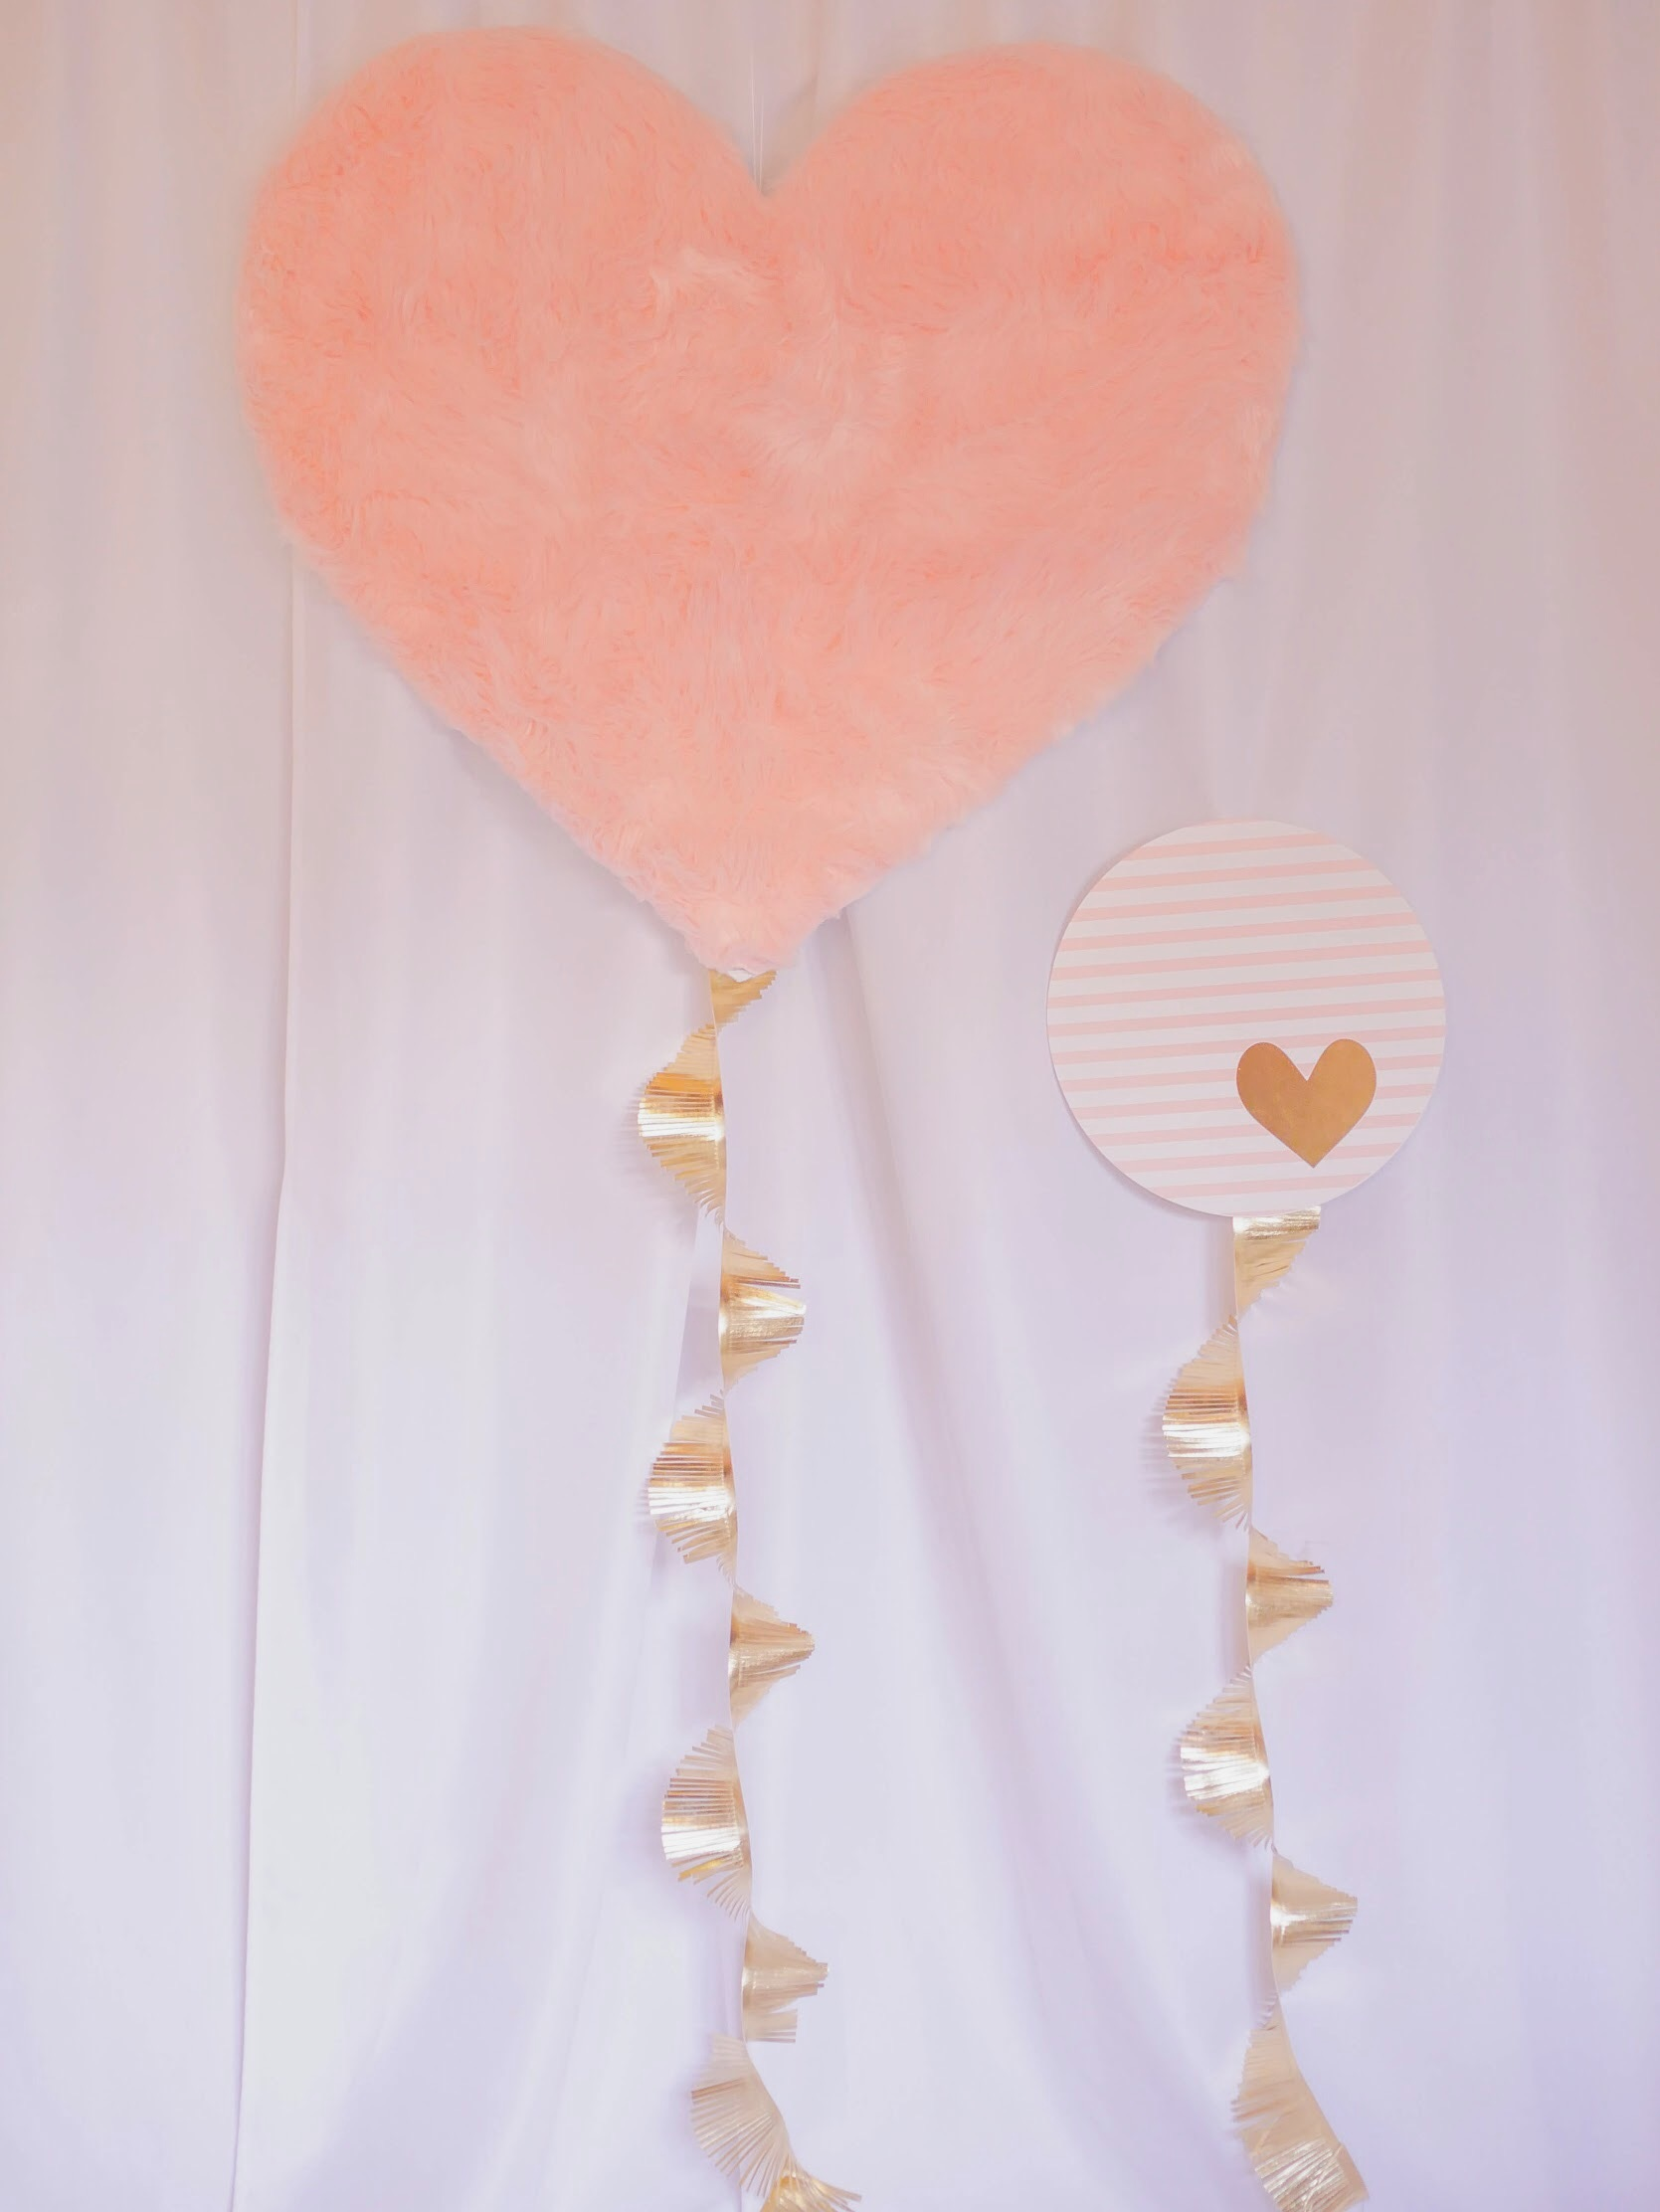 Heart shaped balloon backdrop DIT from Mint Event Design